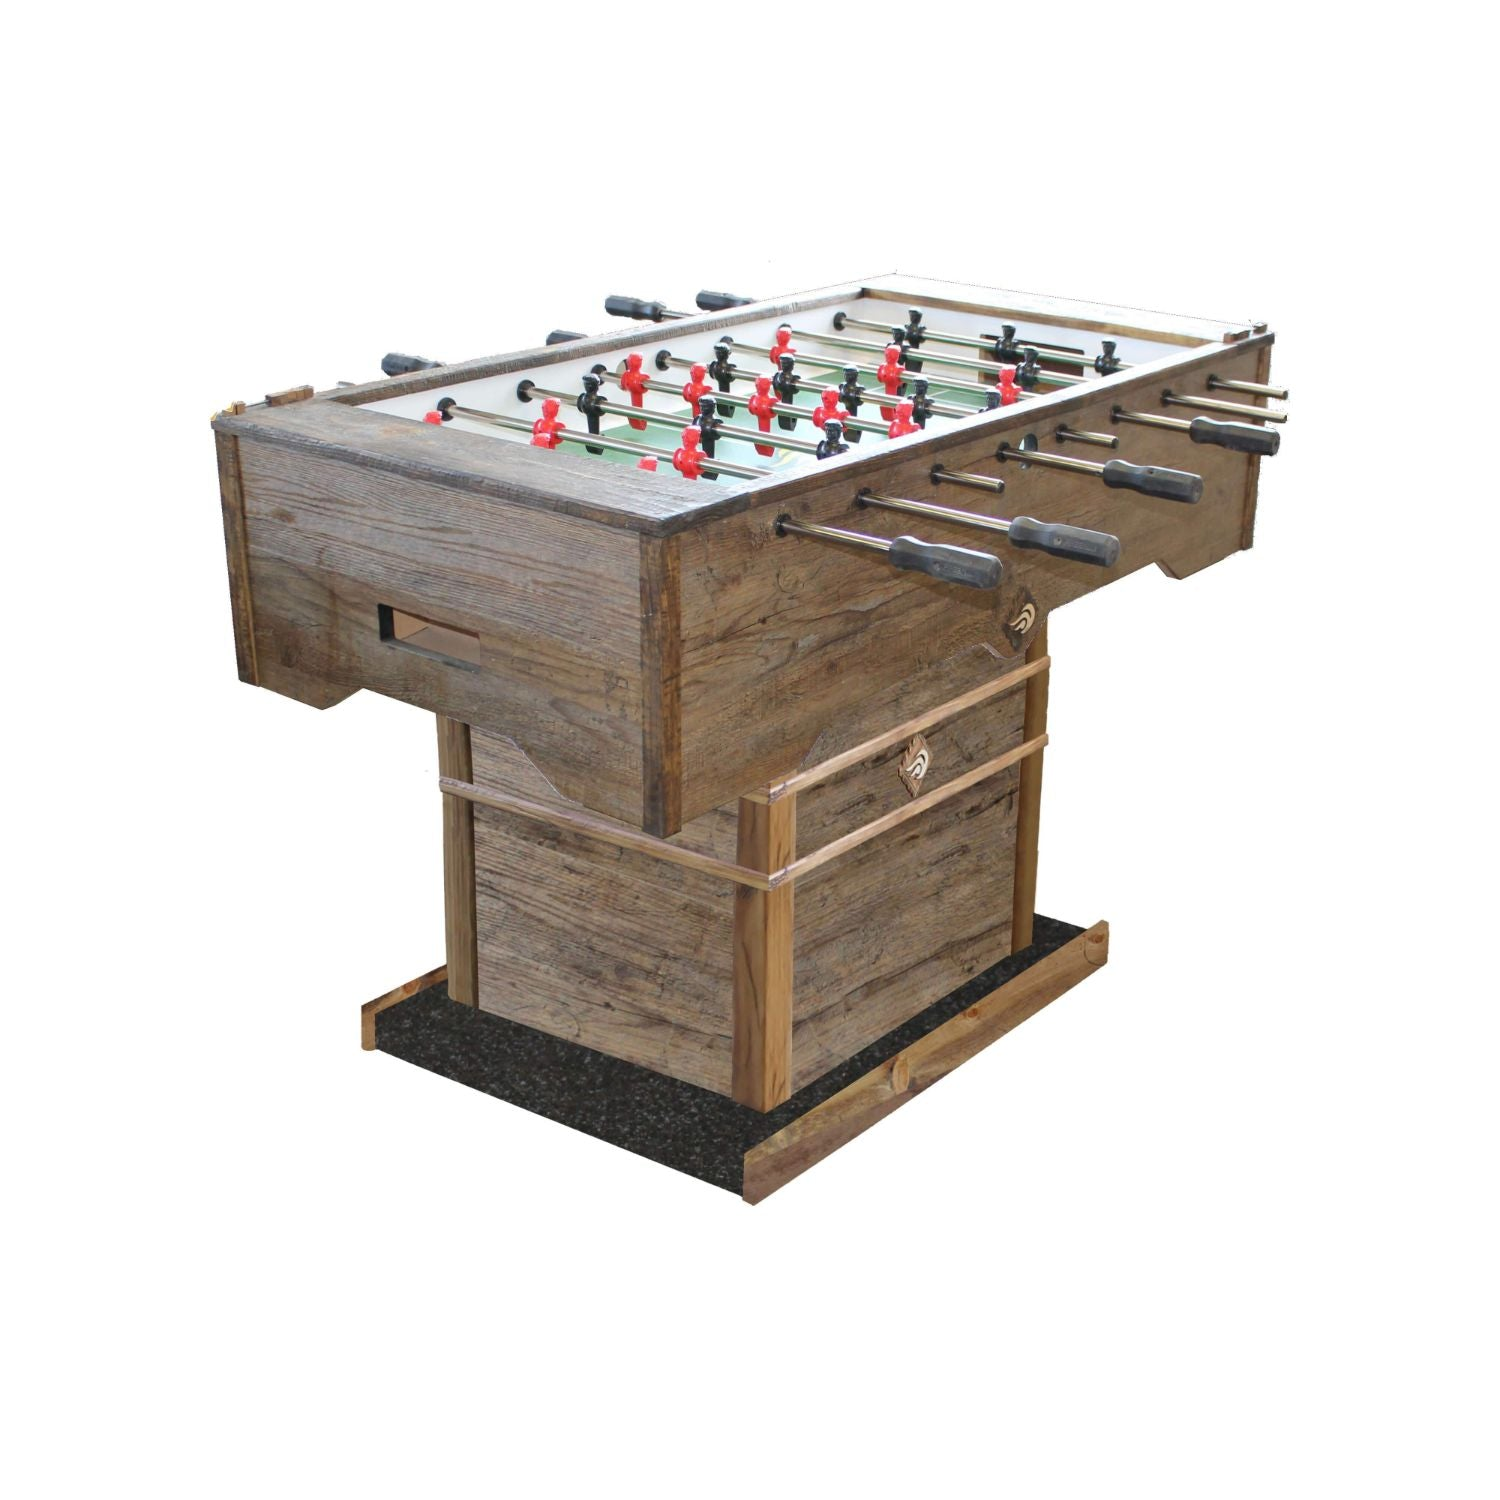 "Performance Games Sure Shot RL Foosball Table 56"" - Gaming Blaze"